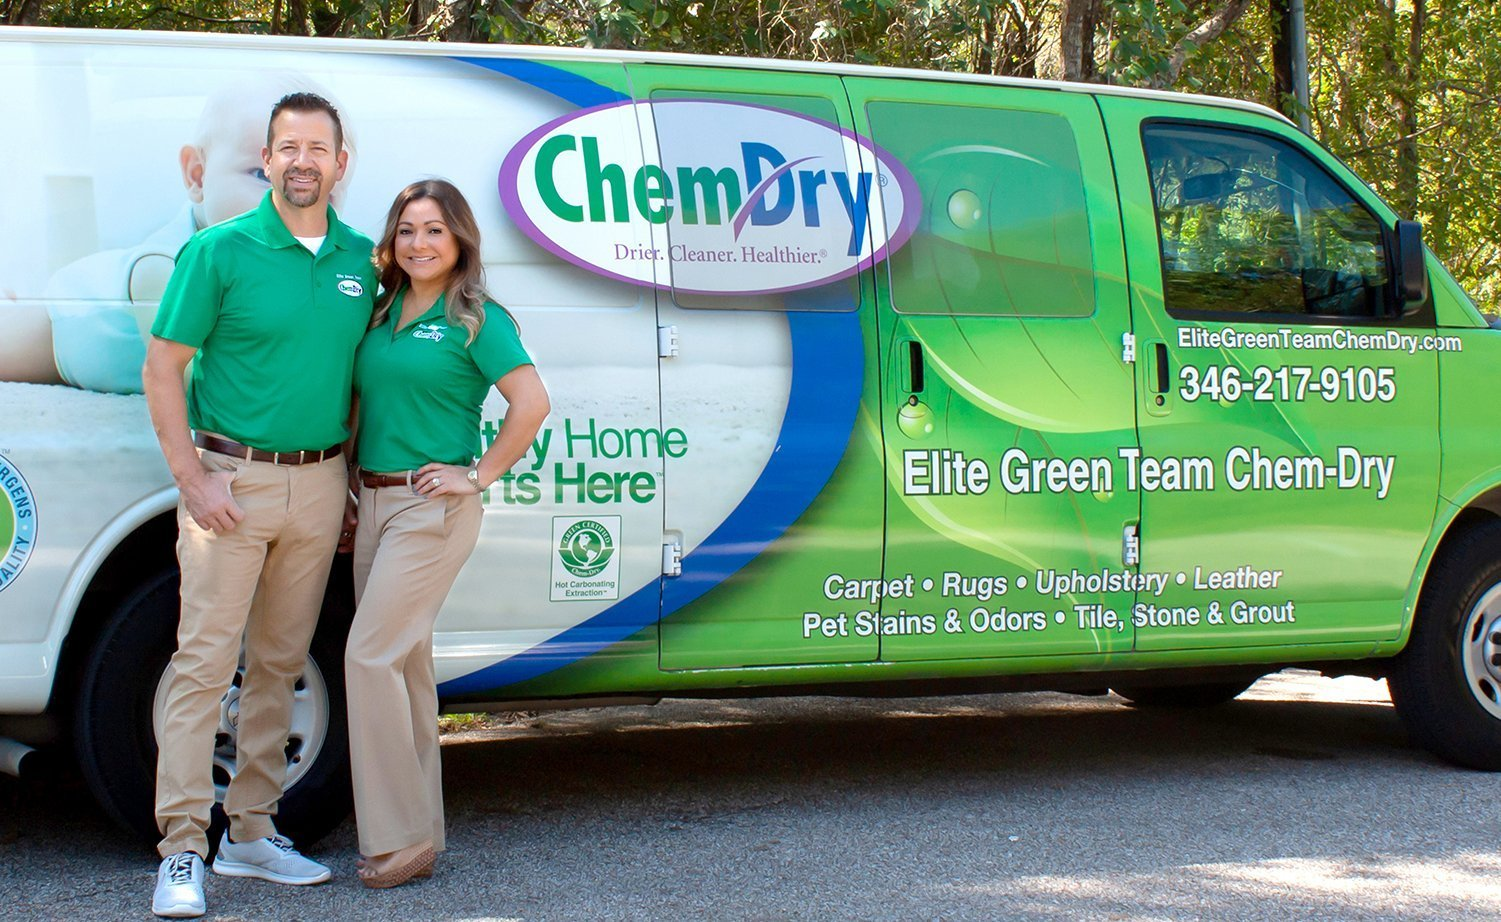 elite green team chemdry friendswood texas